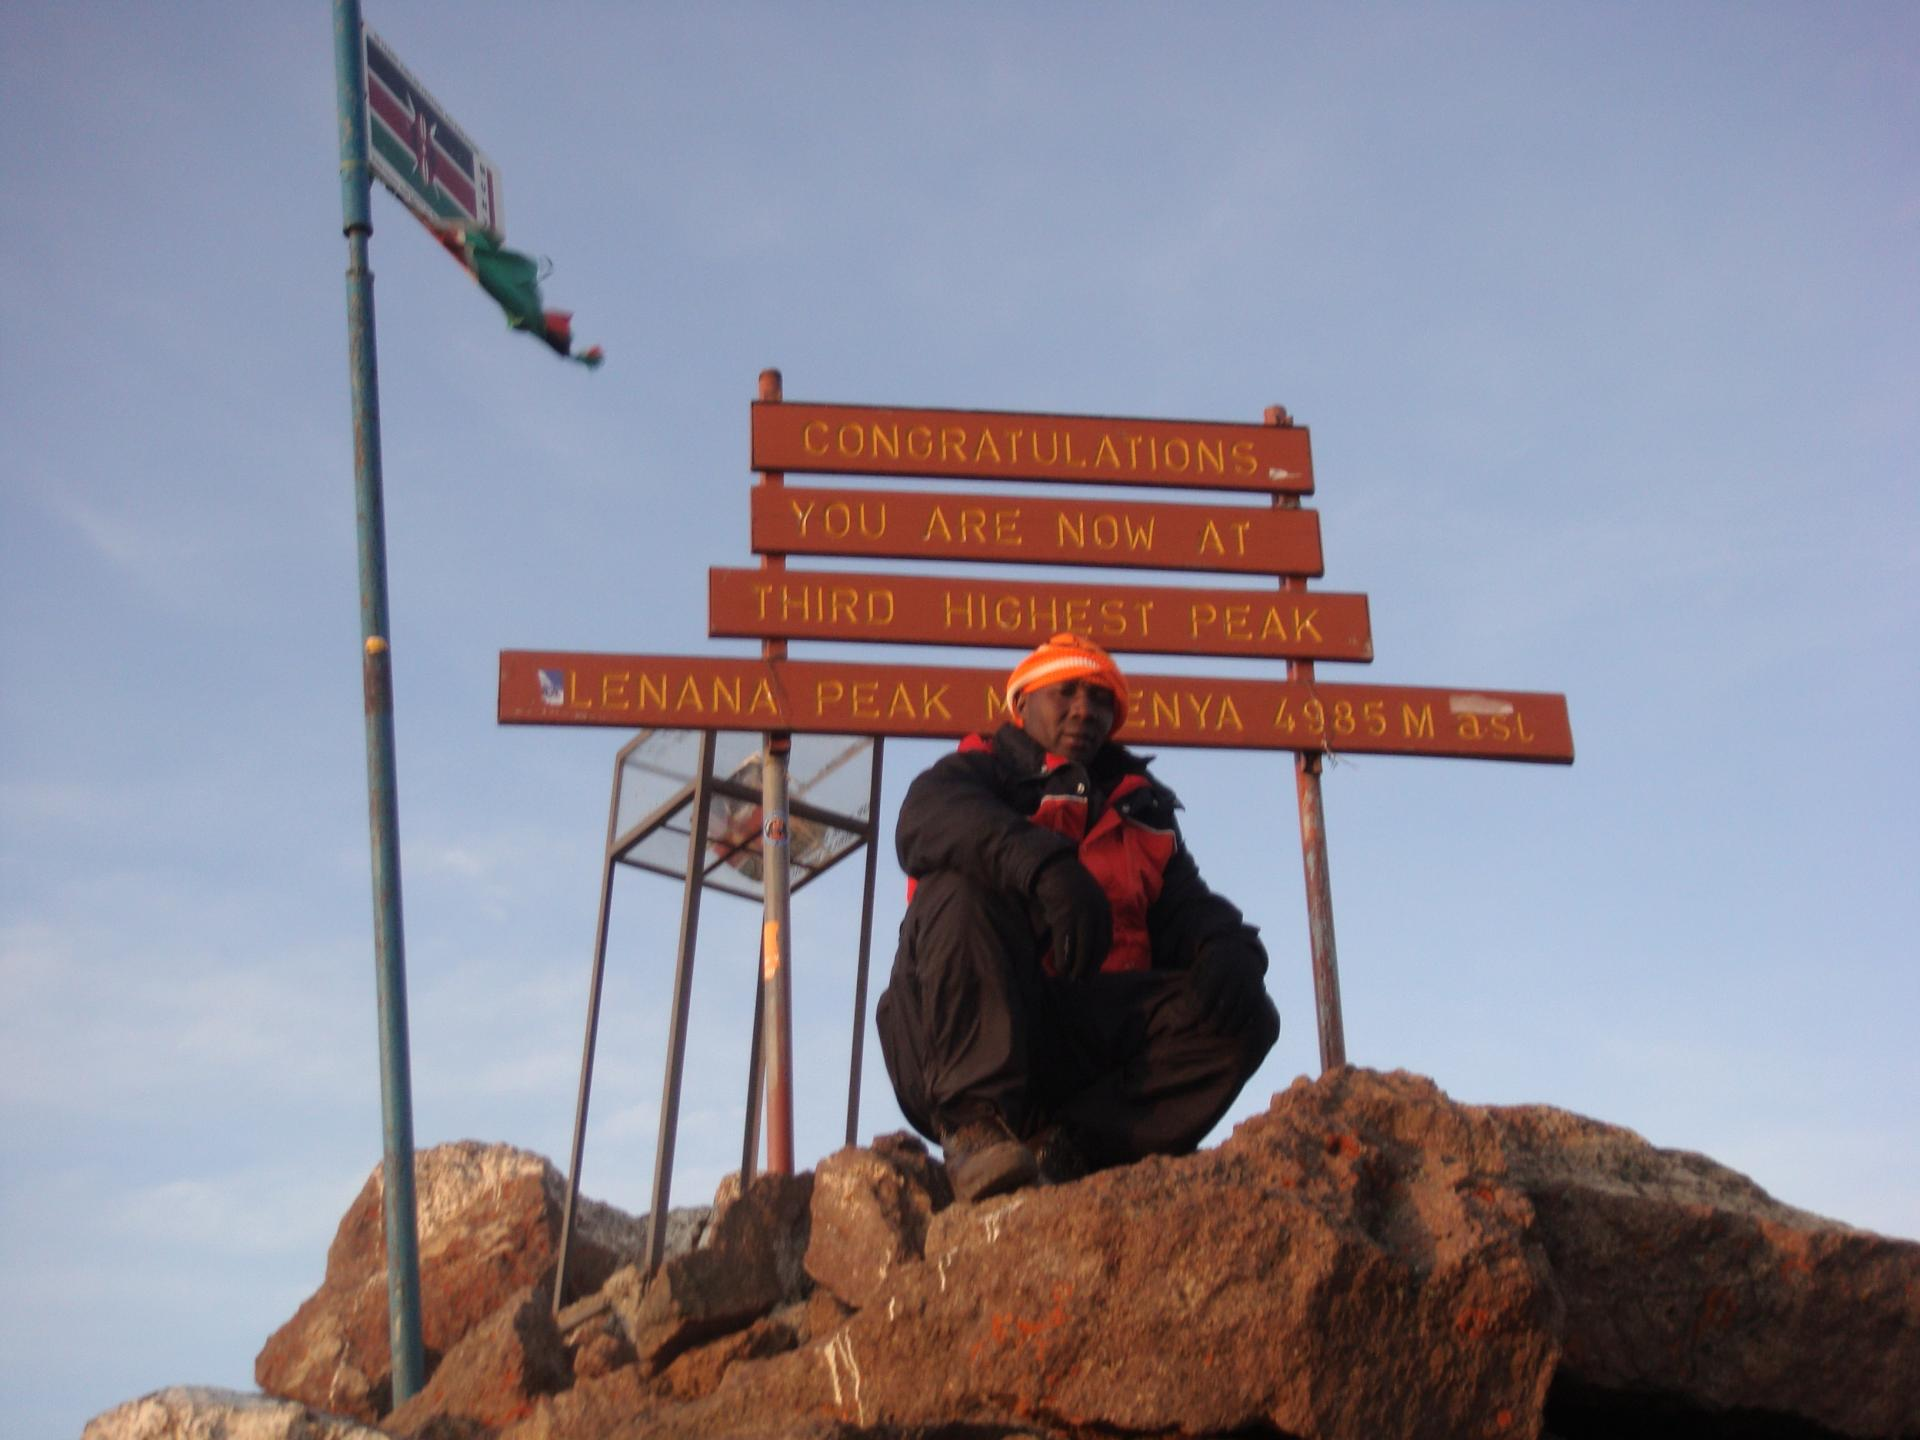 Mount kenya Summit Trek